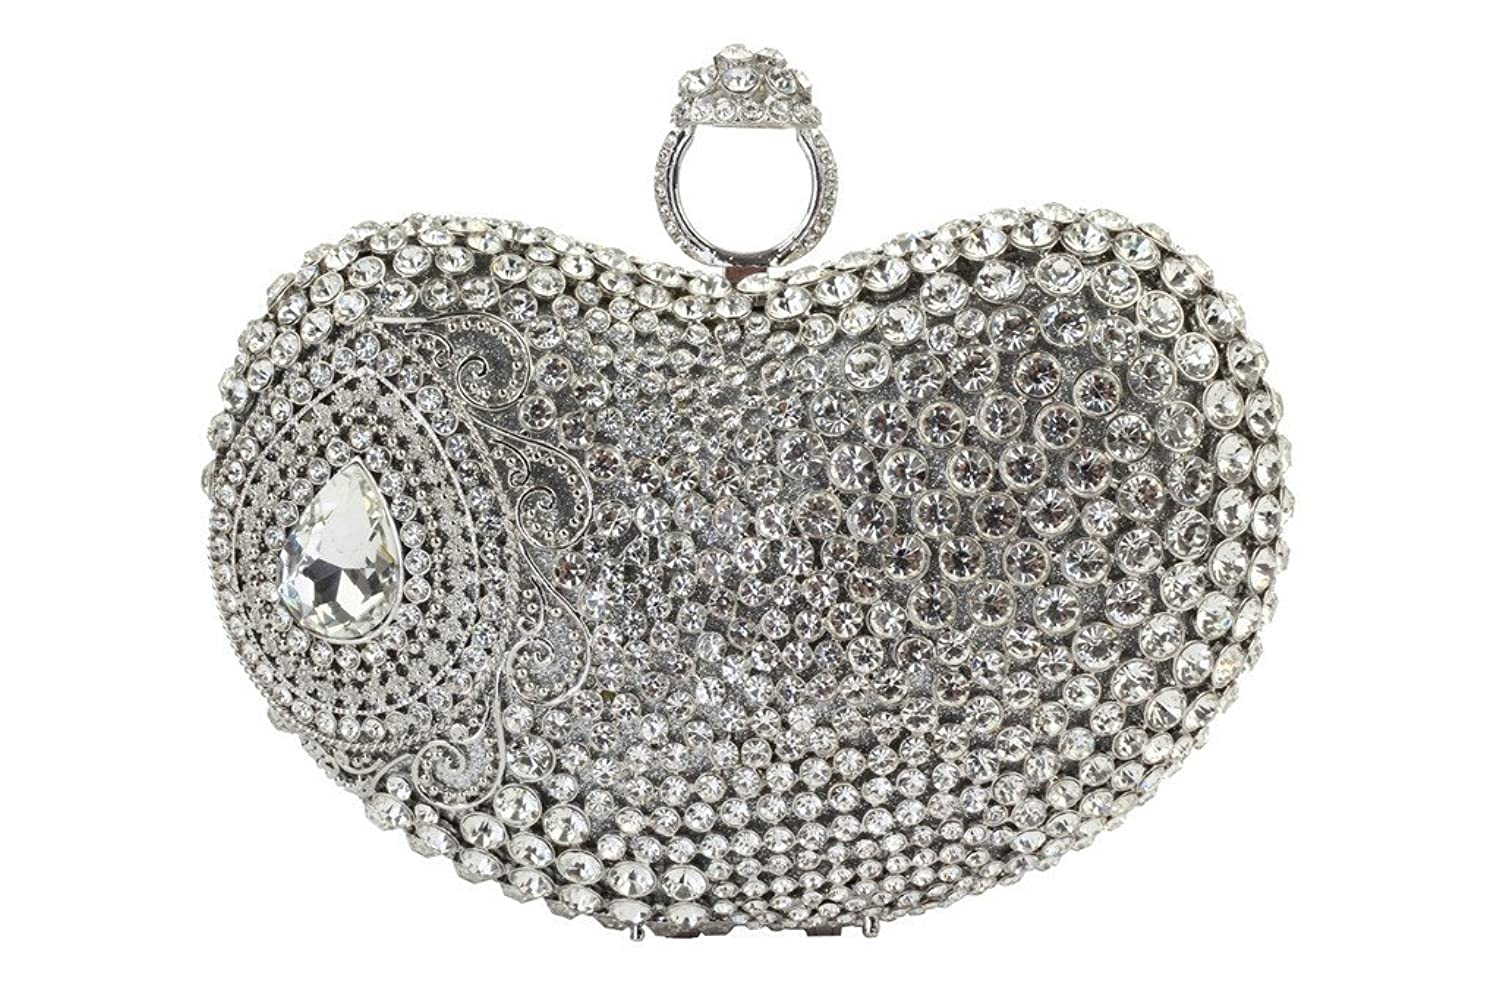 Yilongsheng Women's Heart-shaped Beaded Evening Handbags with Dazzling Crystal Rhinestones